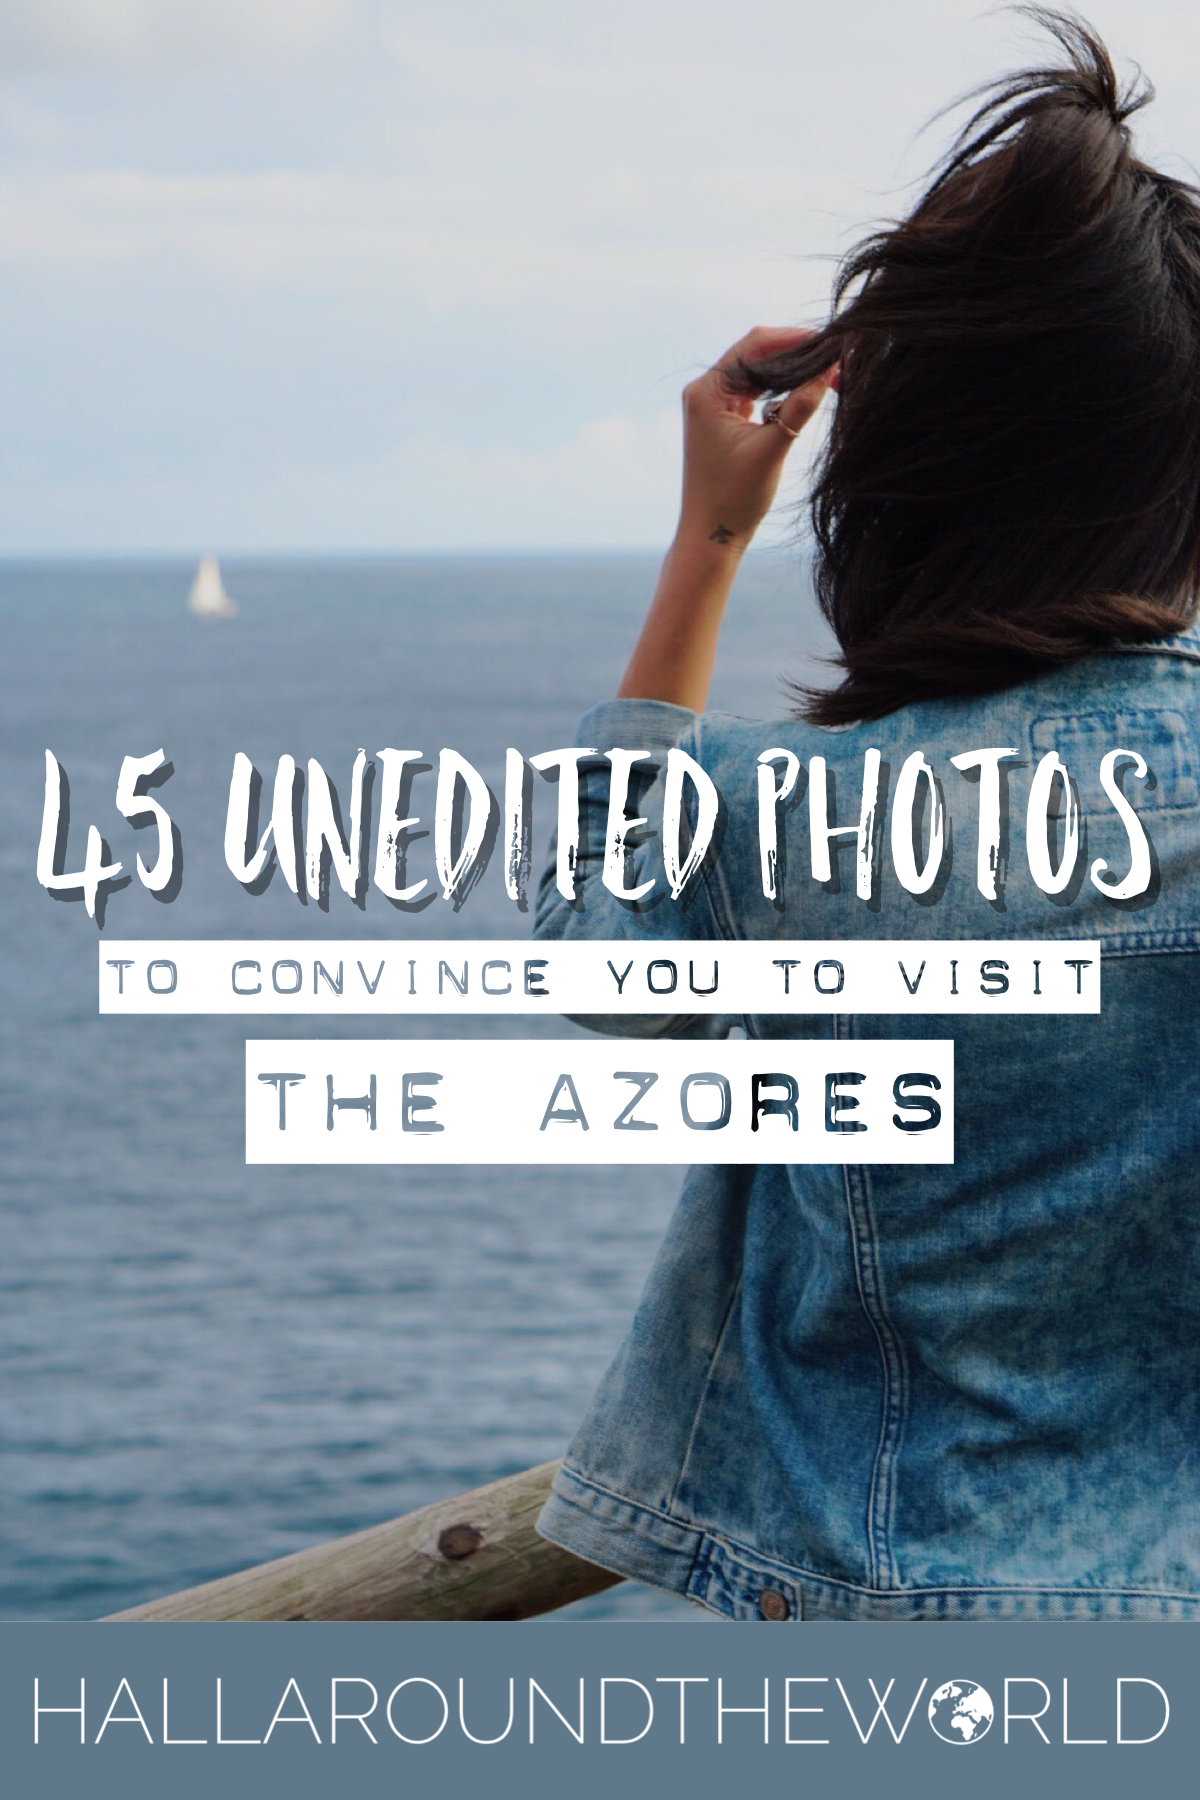 Photo Diary: 45 Unedited Photos to Convince You to Visit the Azores | HallAroundtheWorld